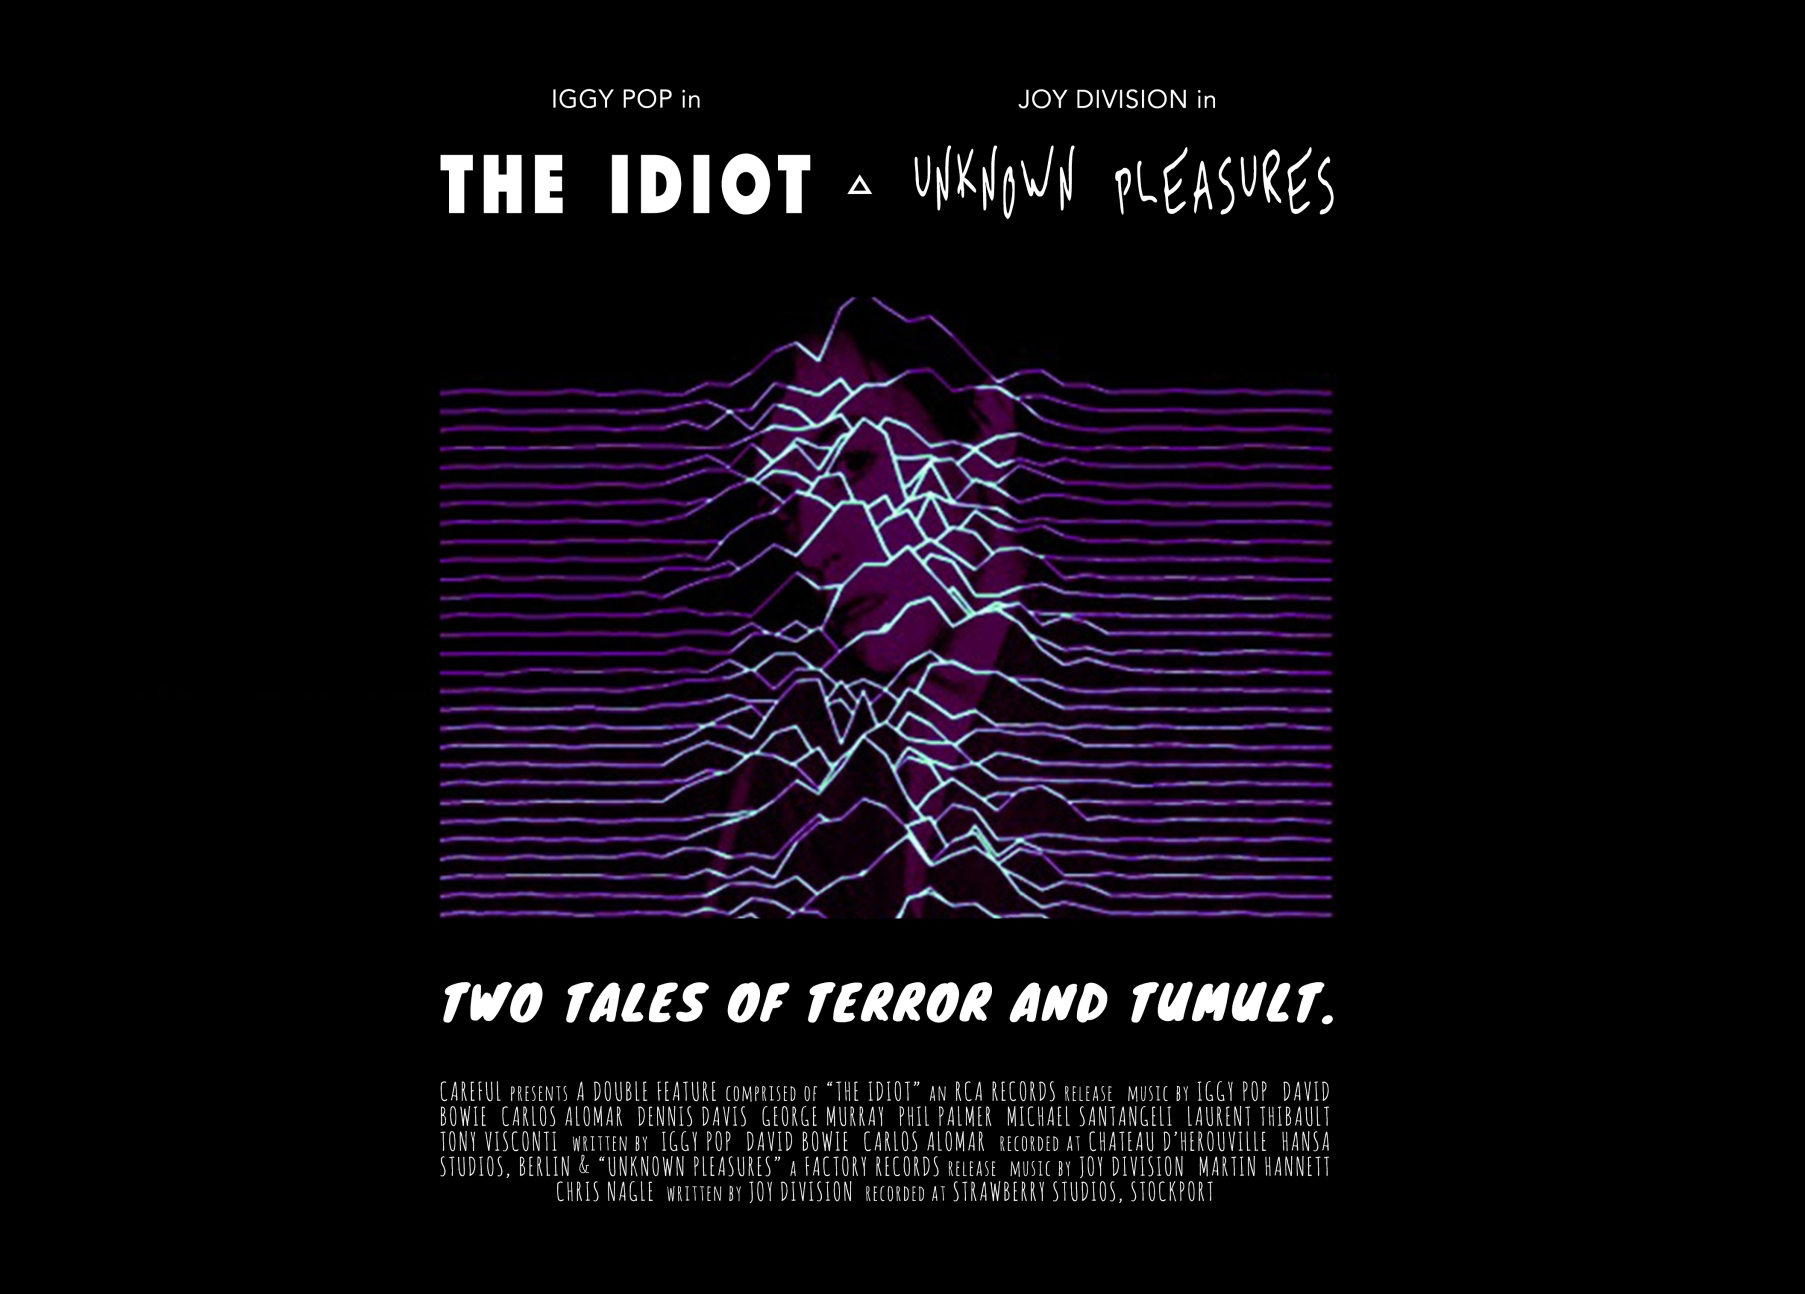 The Idiot & Unknown Pleasures Double Feature Poster